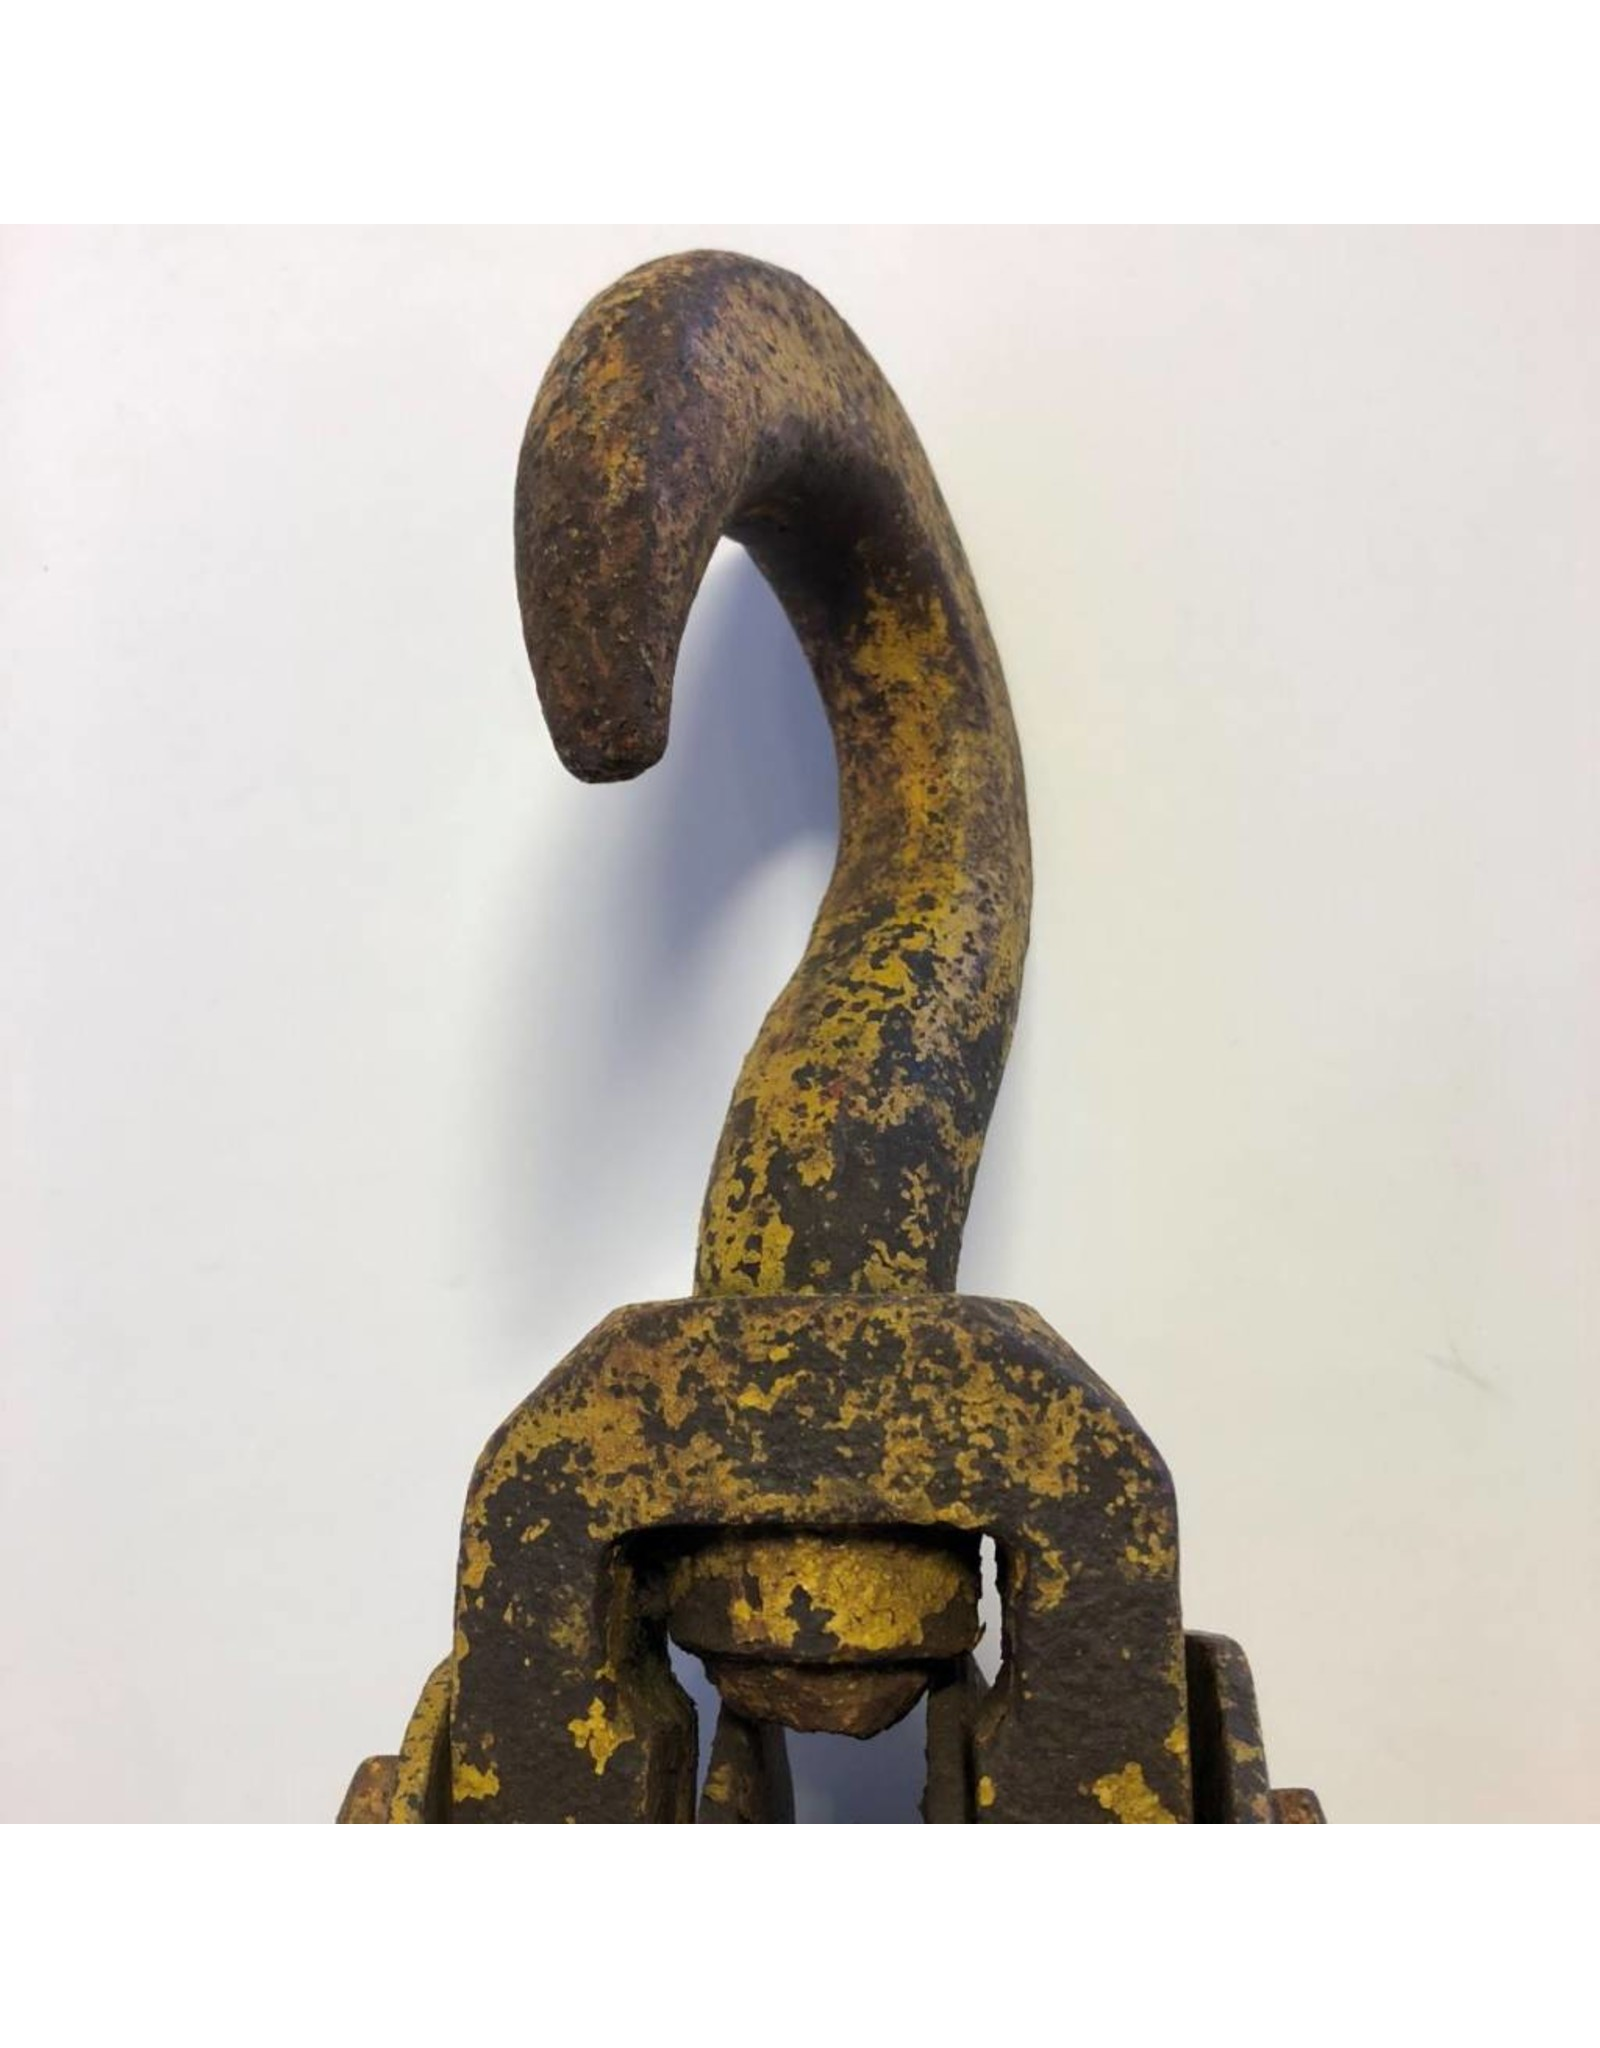 Triple sheave pulley block with hook